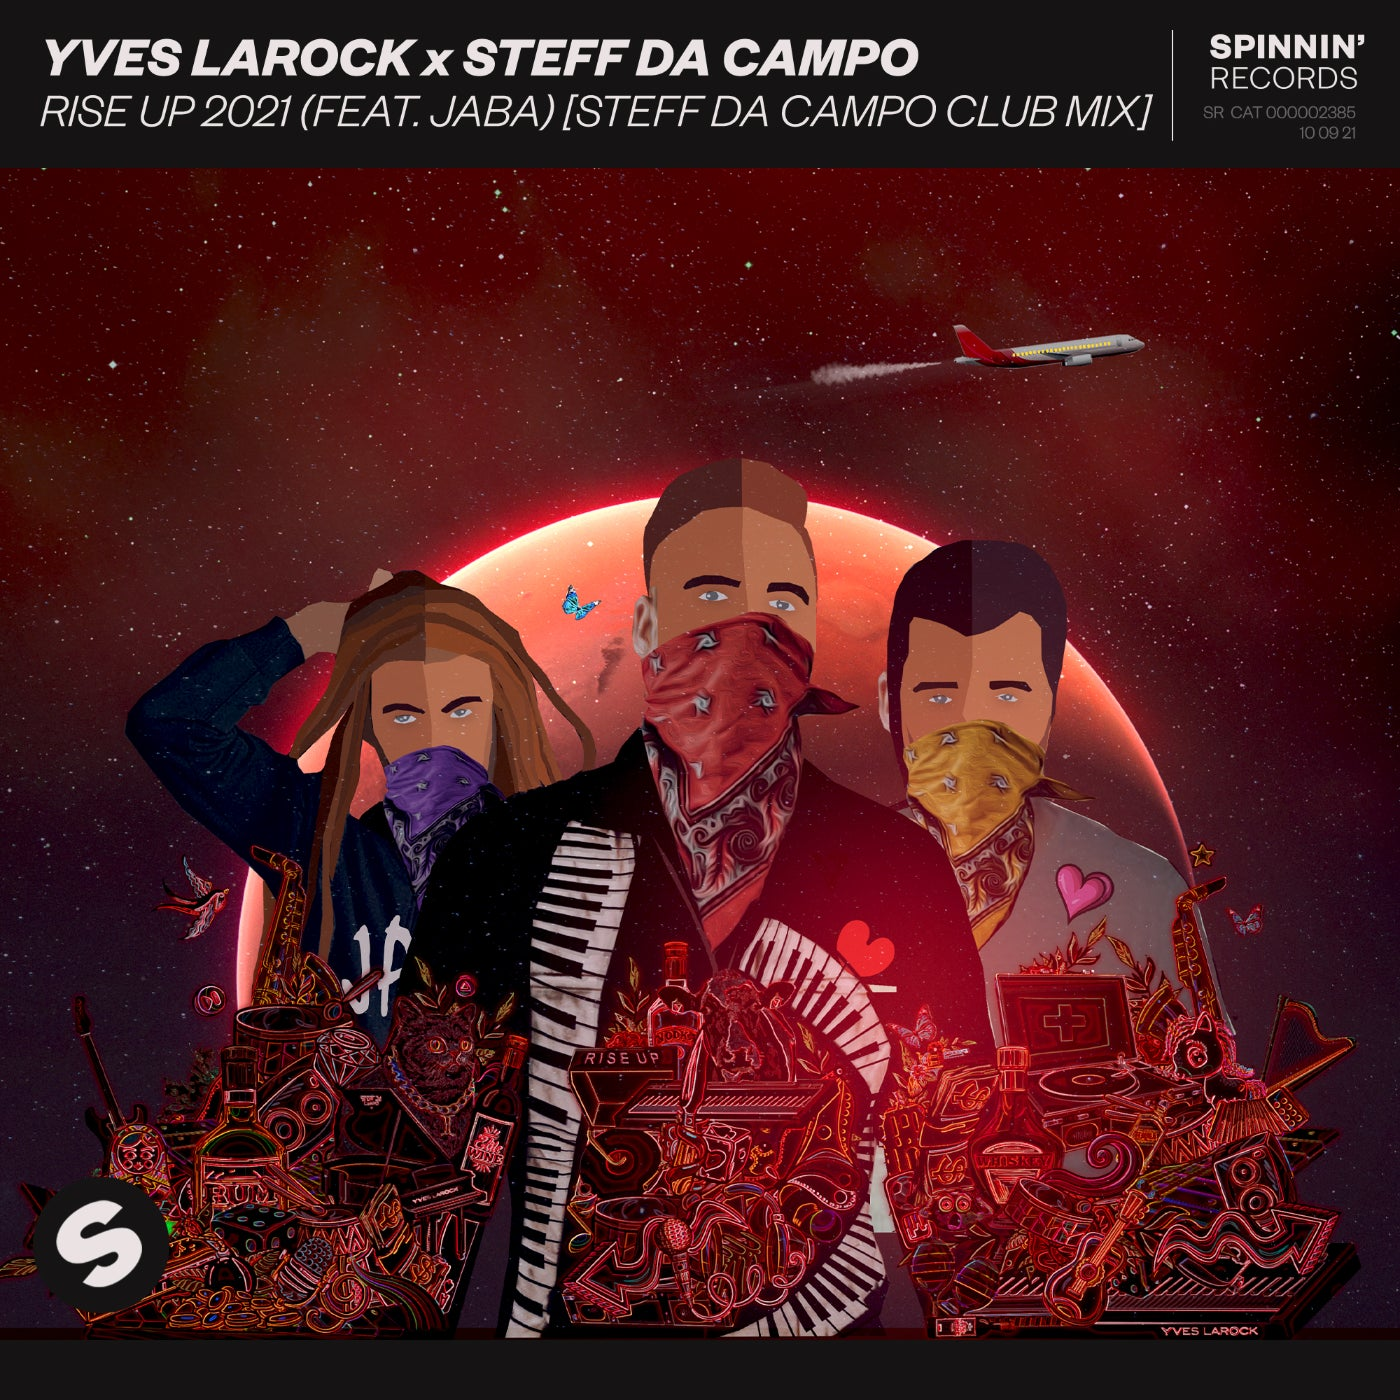 Rise Up 2021 (feat. Jaba) (Steff da Campo Extended Club Mix)